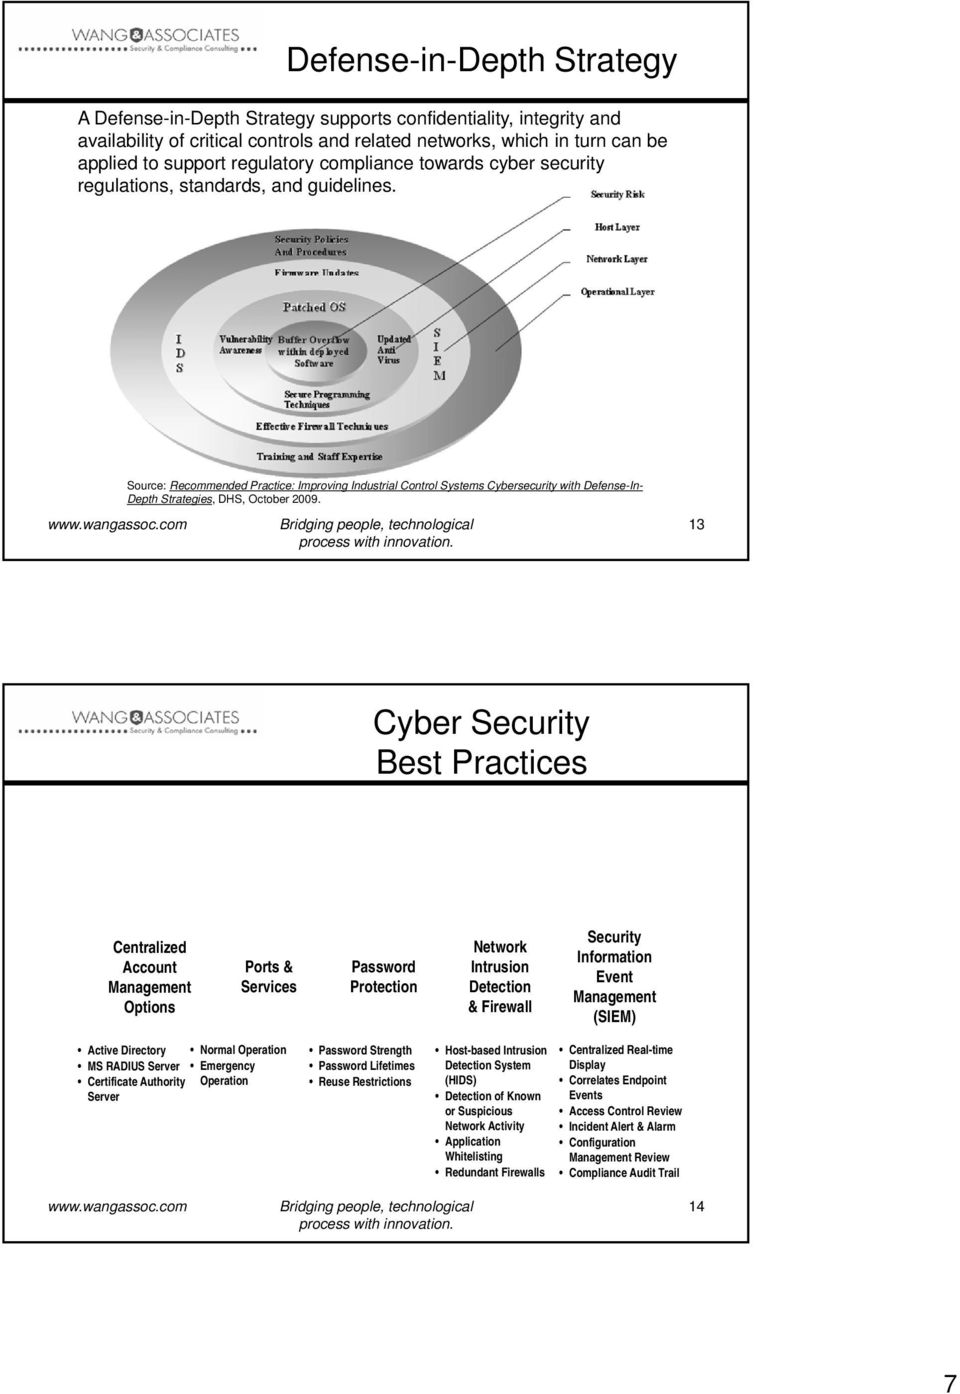 Source: Recommended Practice: Improving Industrial Control Systems Cybersecurity with Defense-In- Depth Strategies, DHS, October 2009.